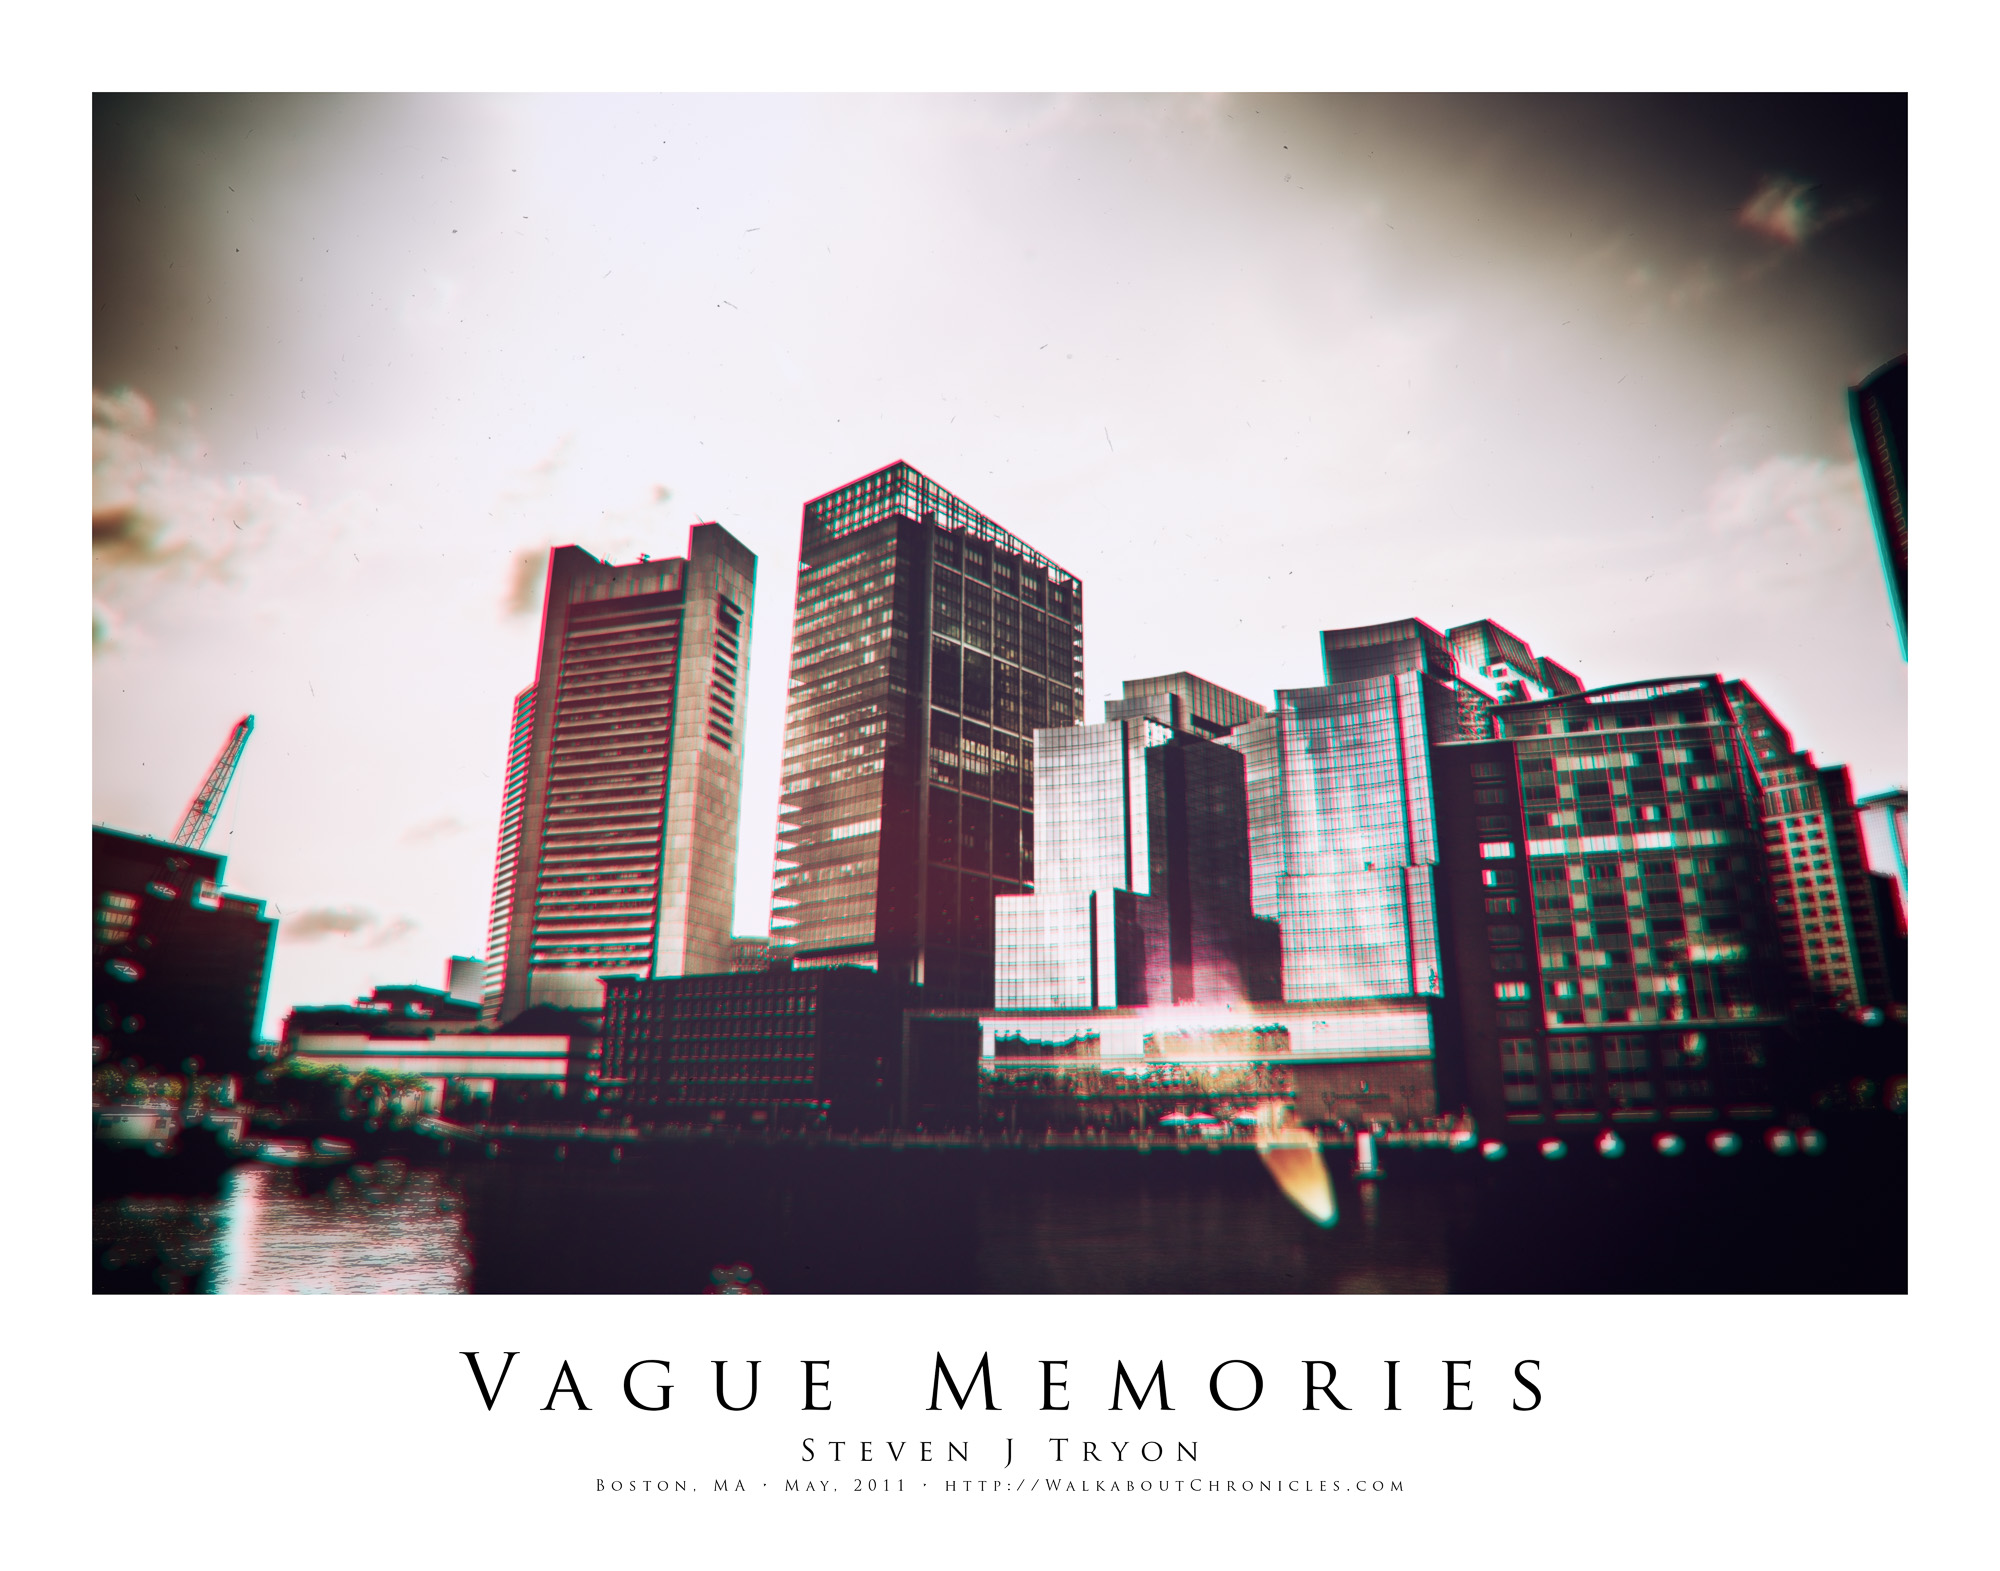 Vague Memories